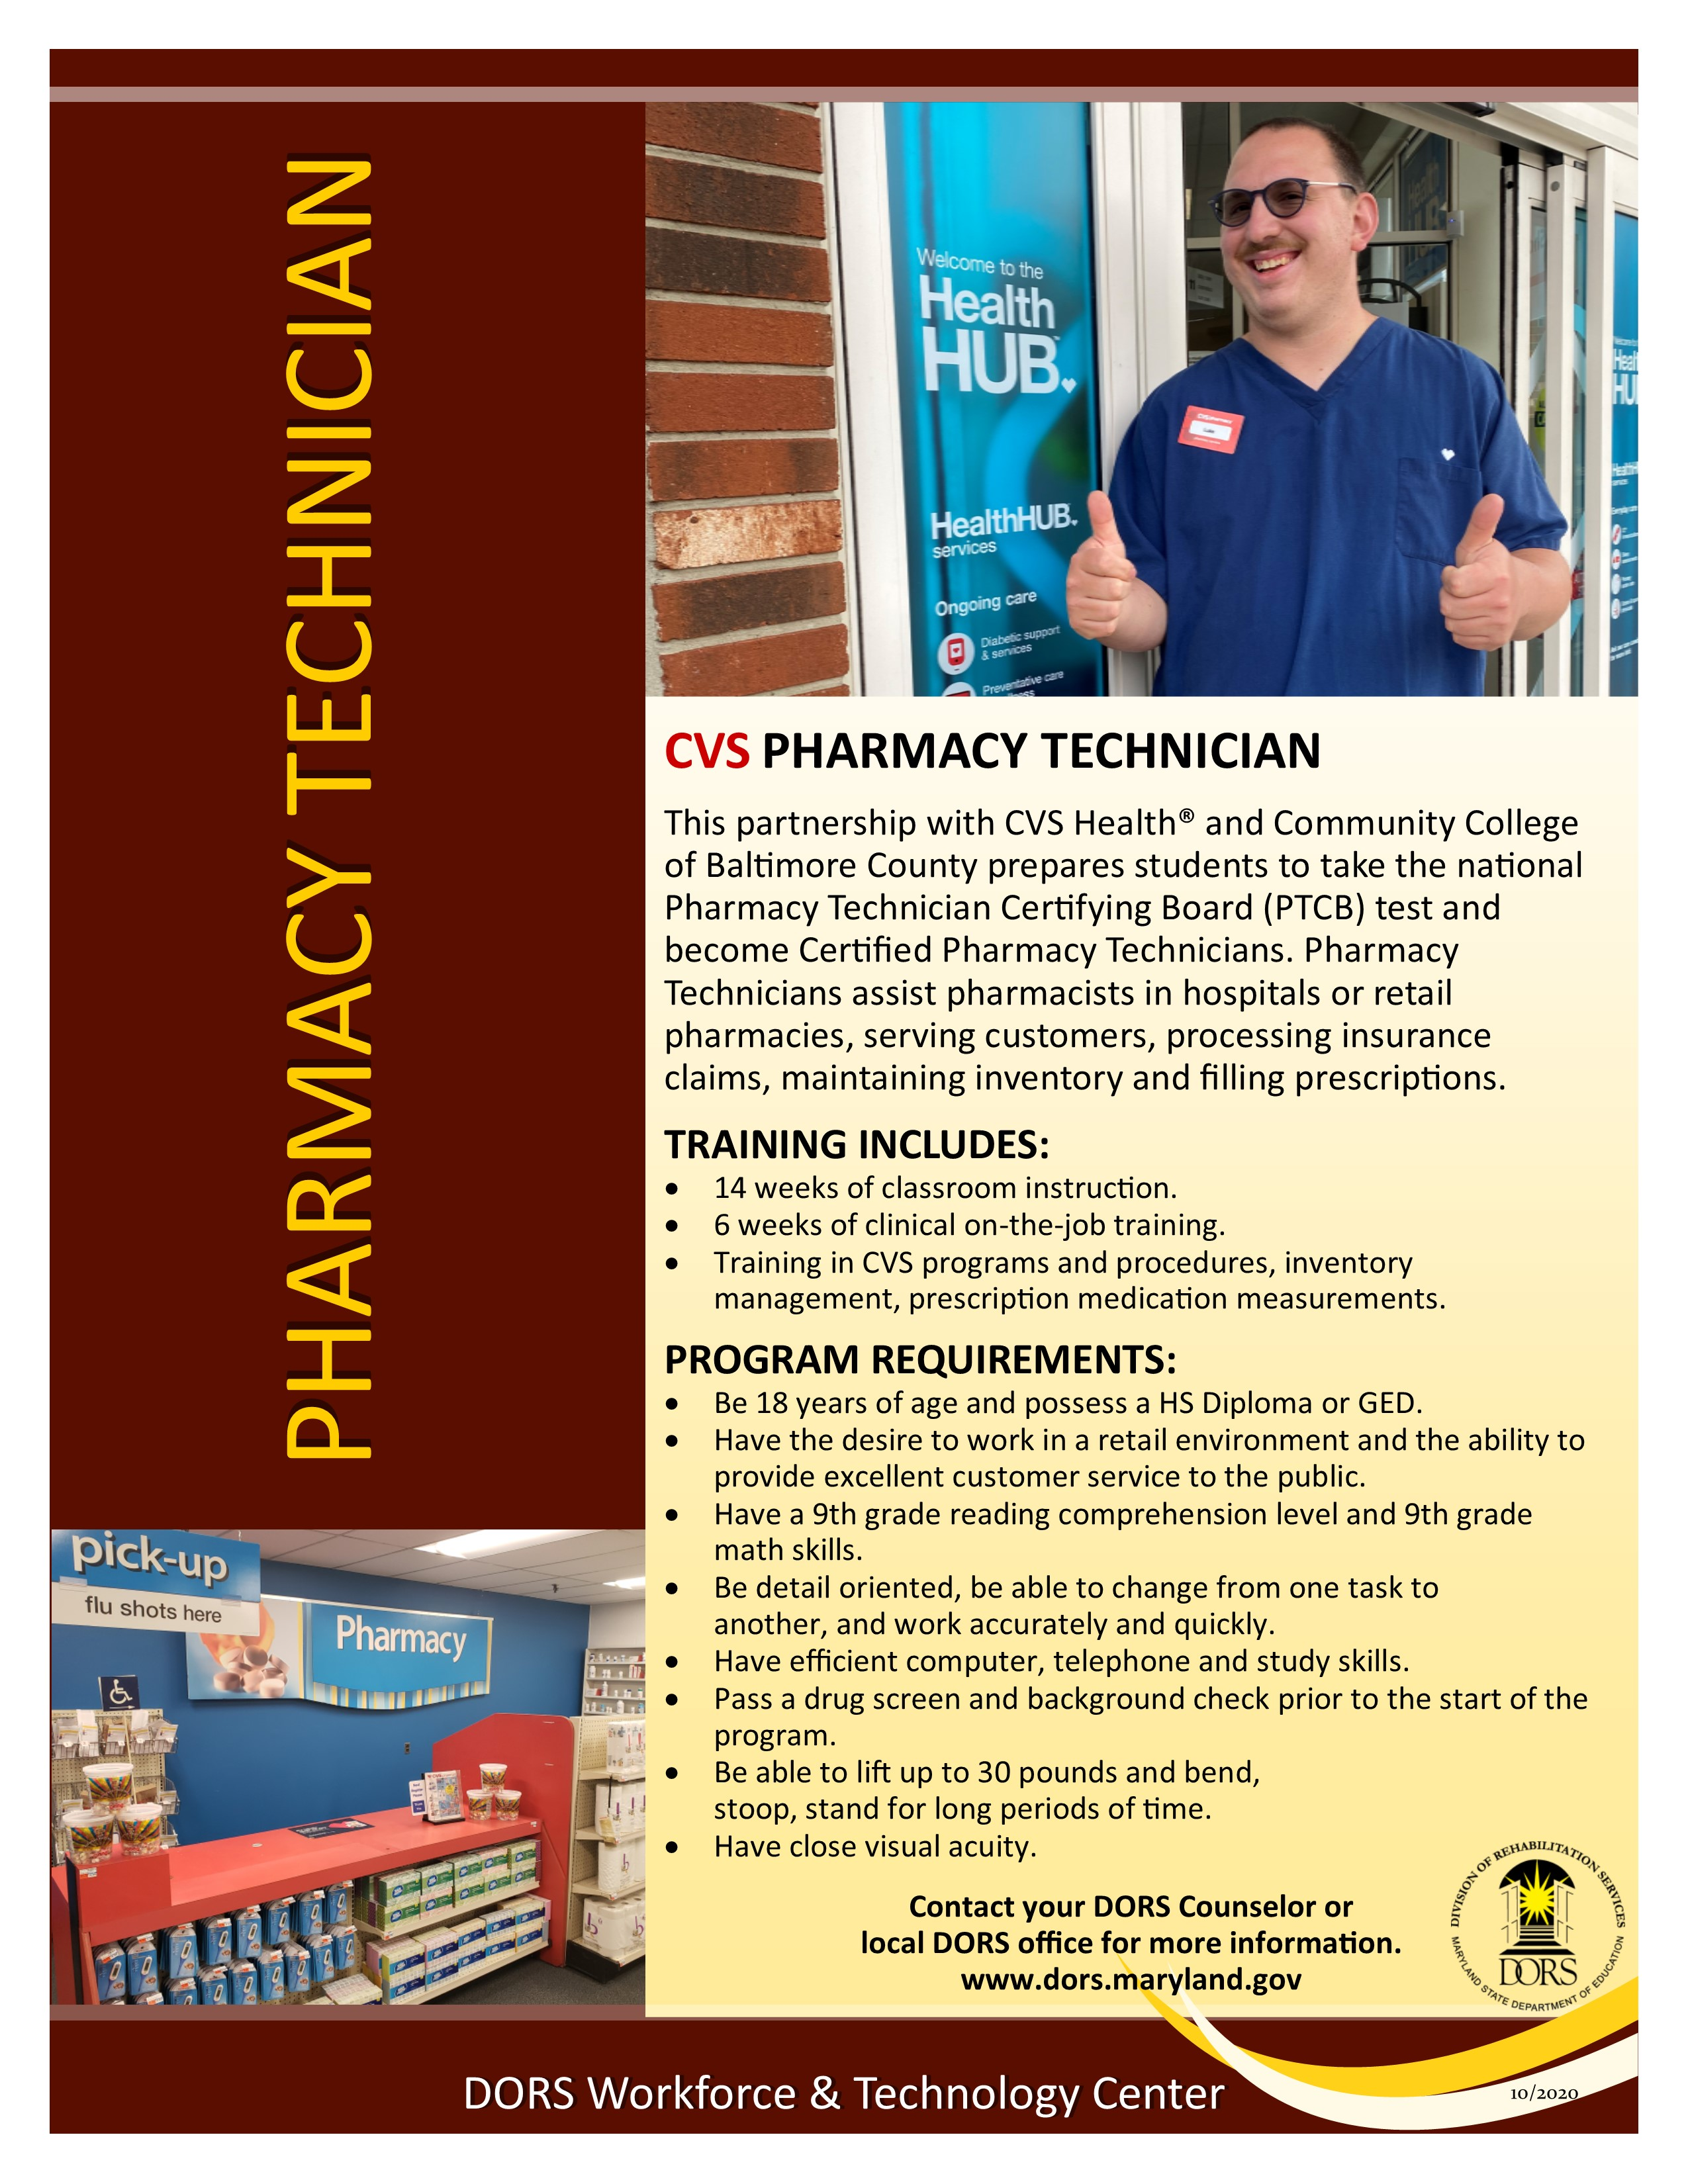 Pharmacy Tech handout.